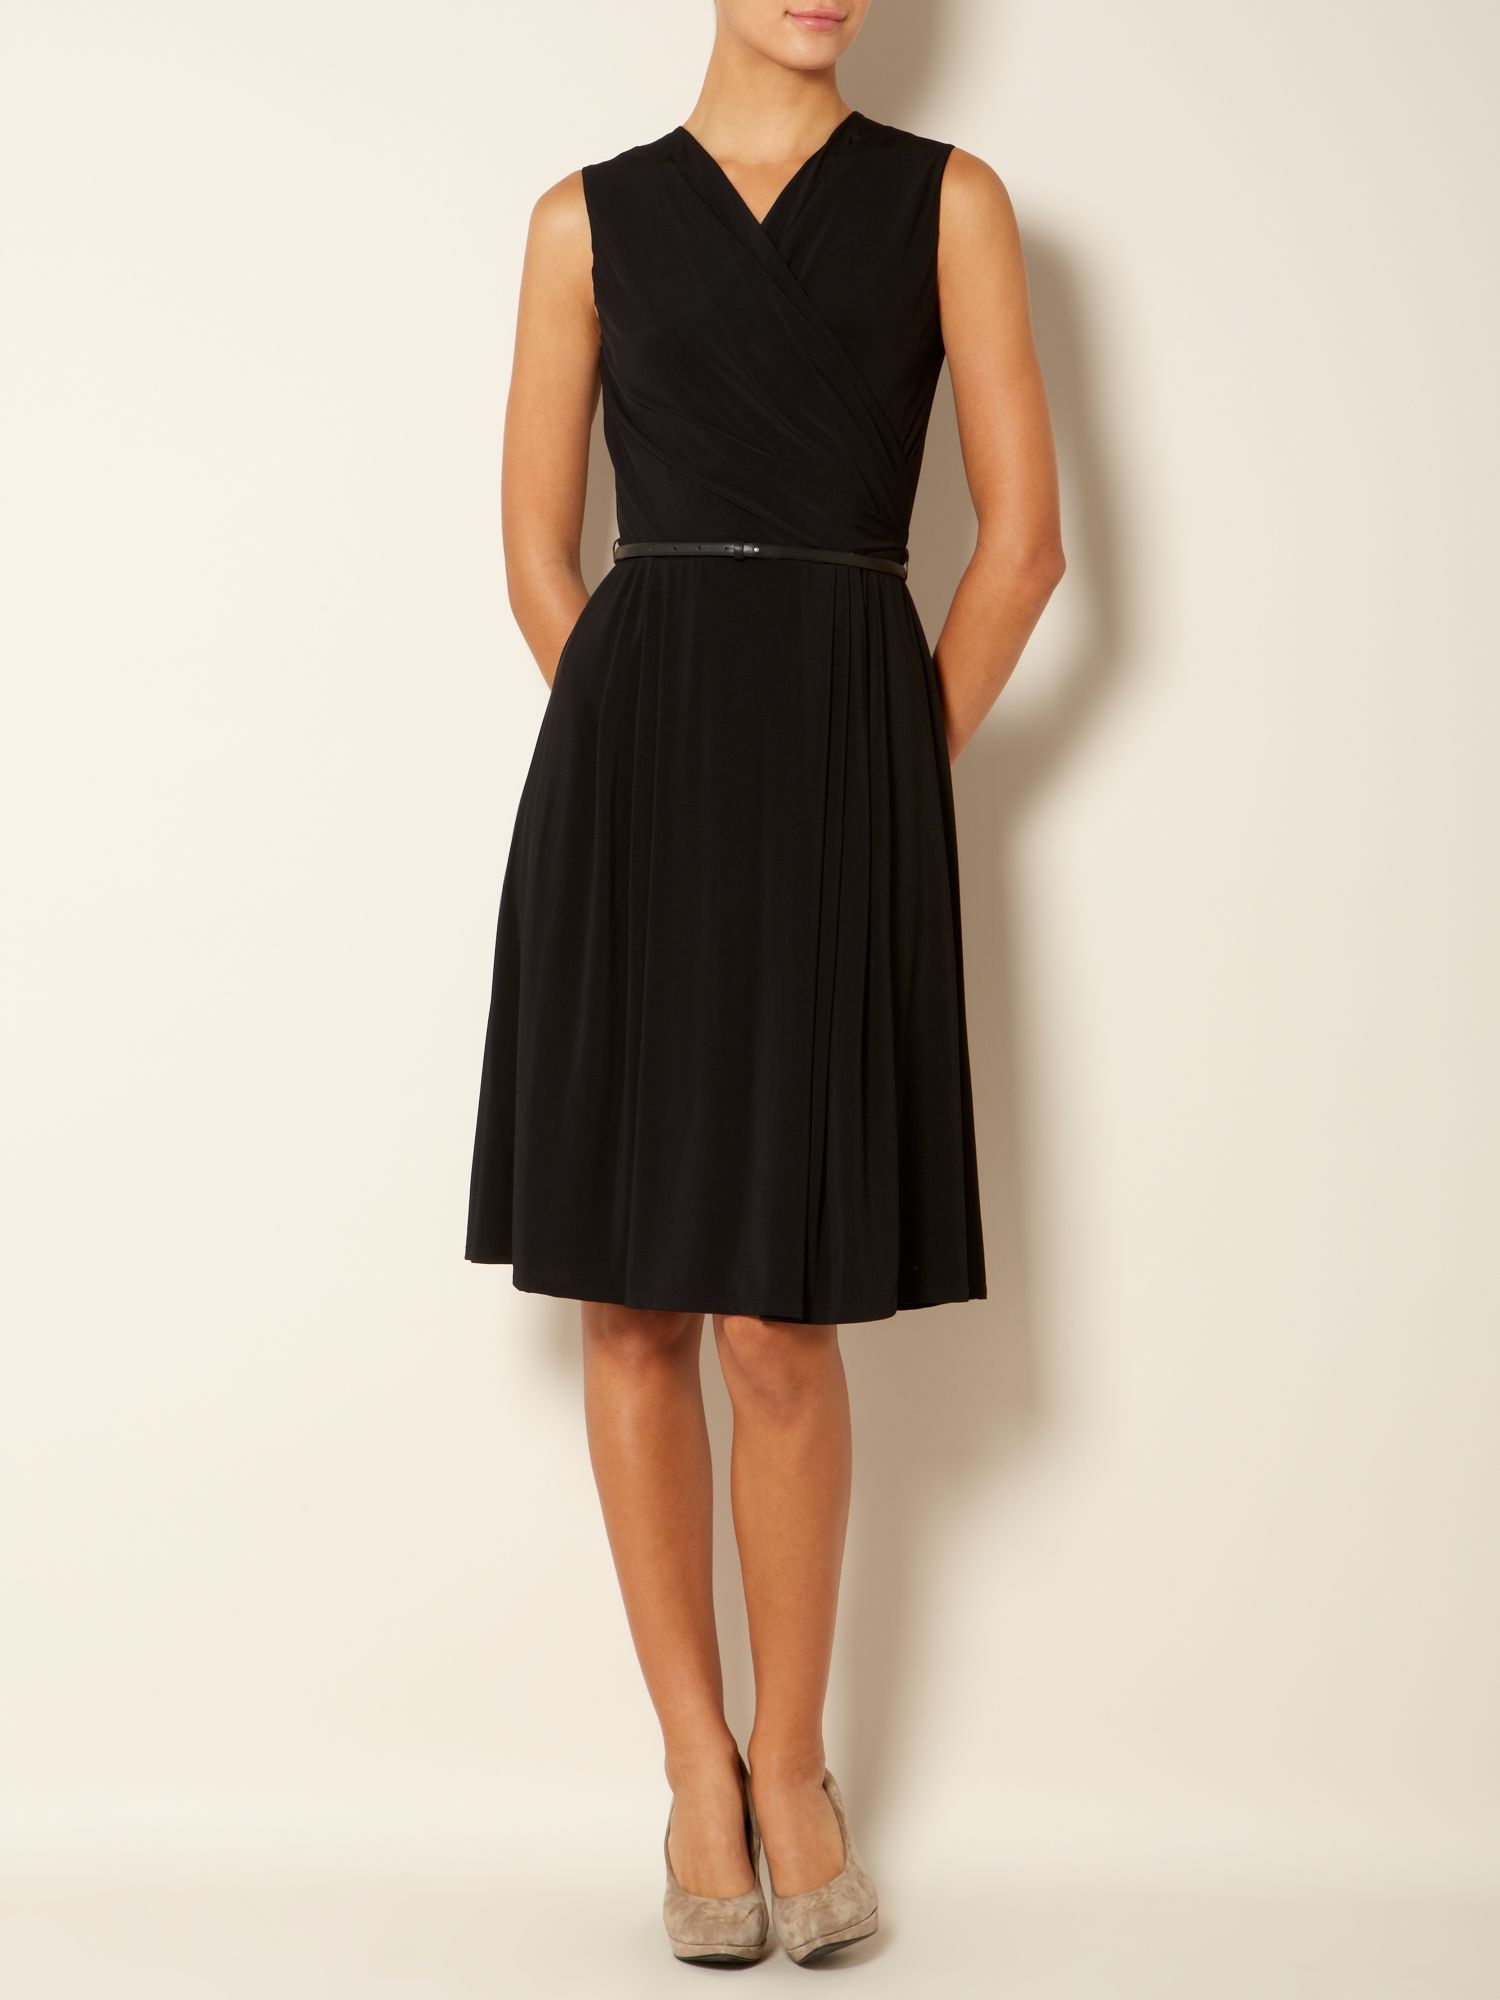 Vicino v-neck shift dress